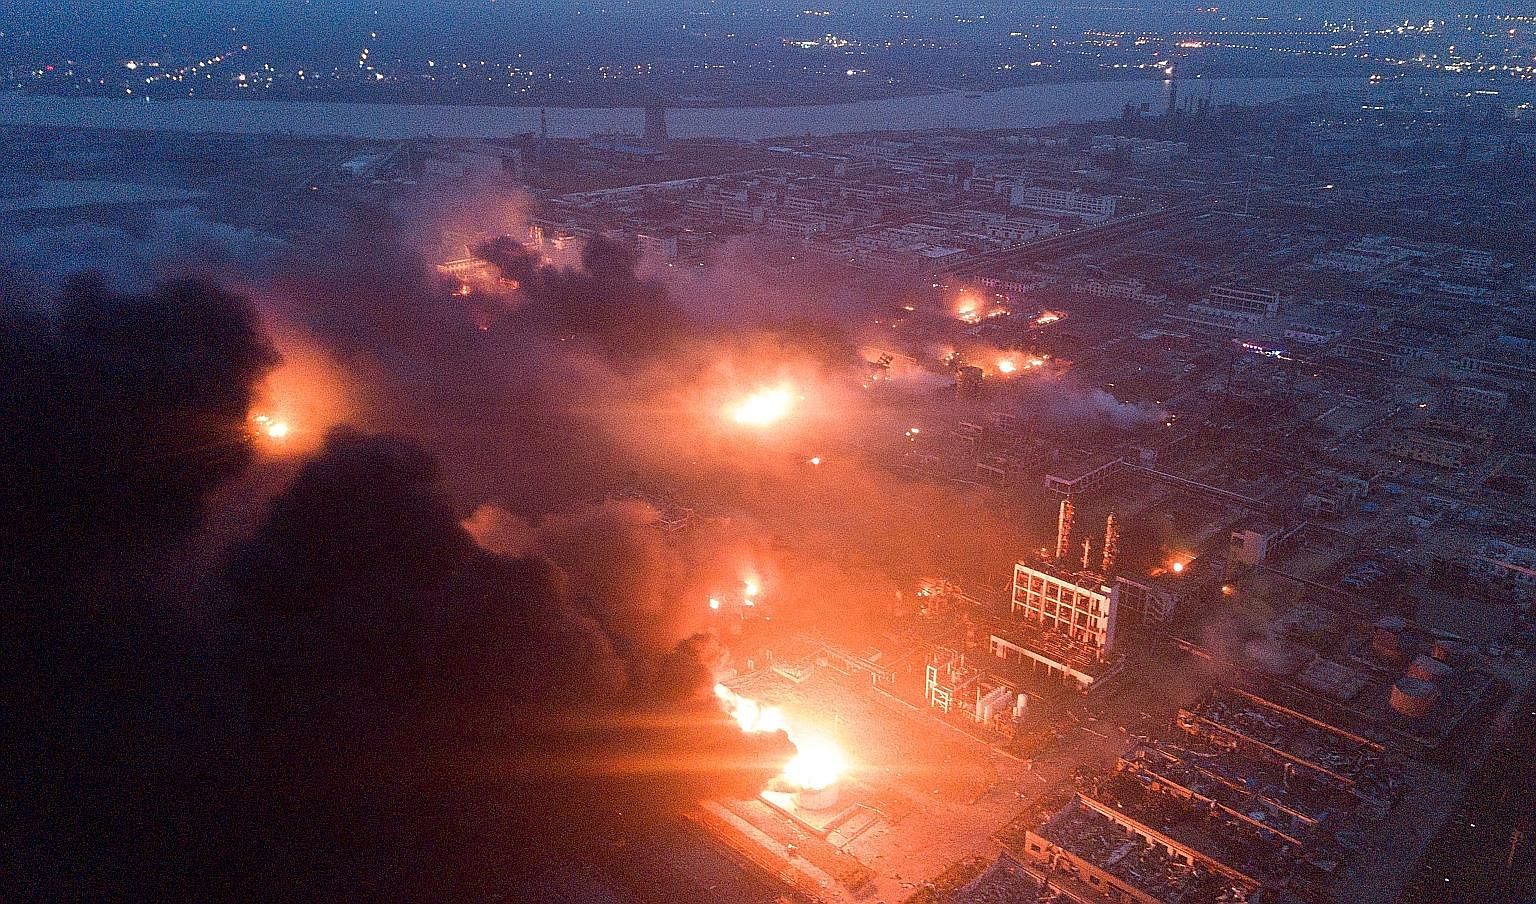 Smoke billowed from a fire at a chemical plant near Yancheng city, in China's eastern Jiangsu province, after a powerful explosion killed at least 62 people and injured 640 others on Thursday. The blast at the Jiangsu Tianjiayi Chemical Company in th